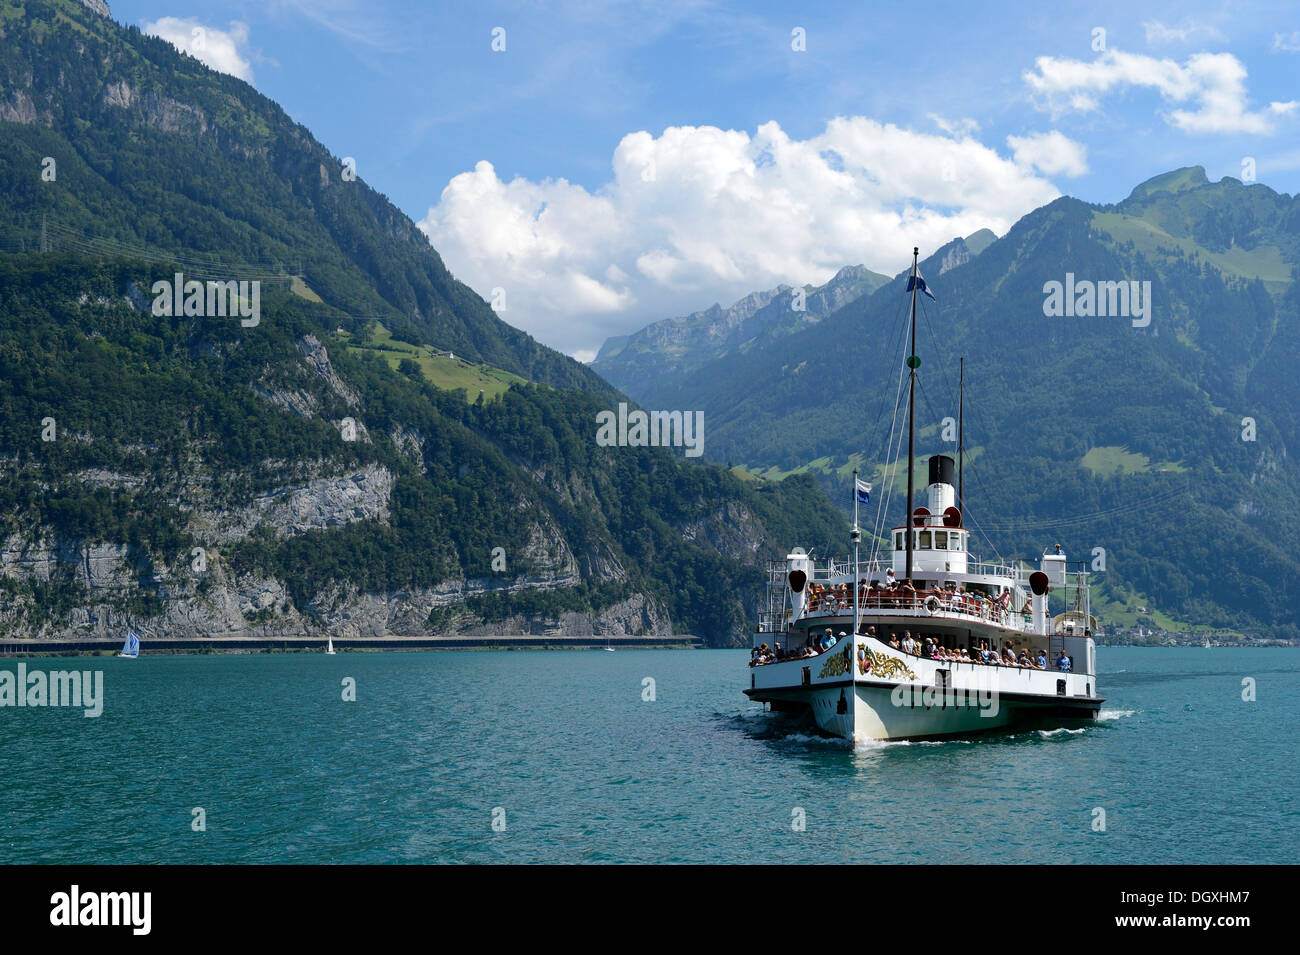 DS Stadt Luzern, the largest paddle steamer on Lake Lucerne, Brunnen, Switzerland, Europe - Stock Image